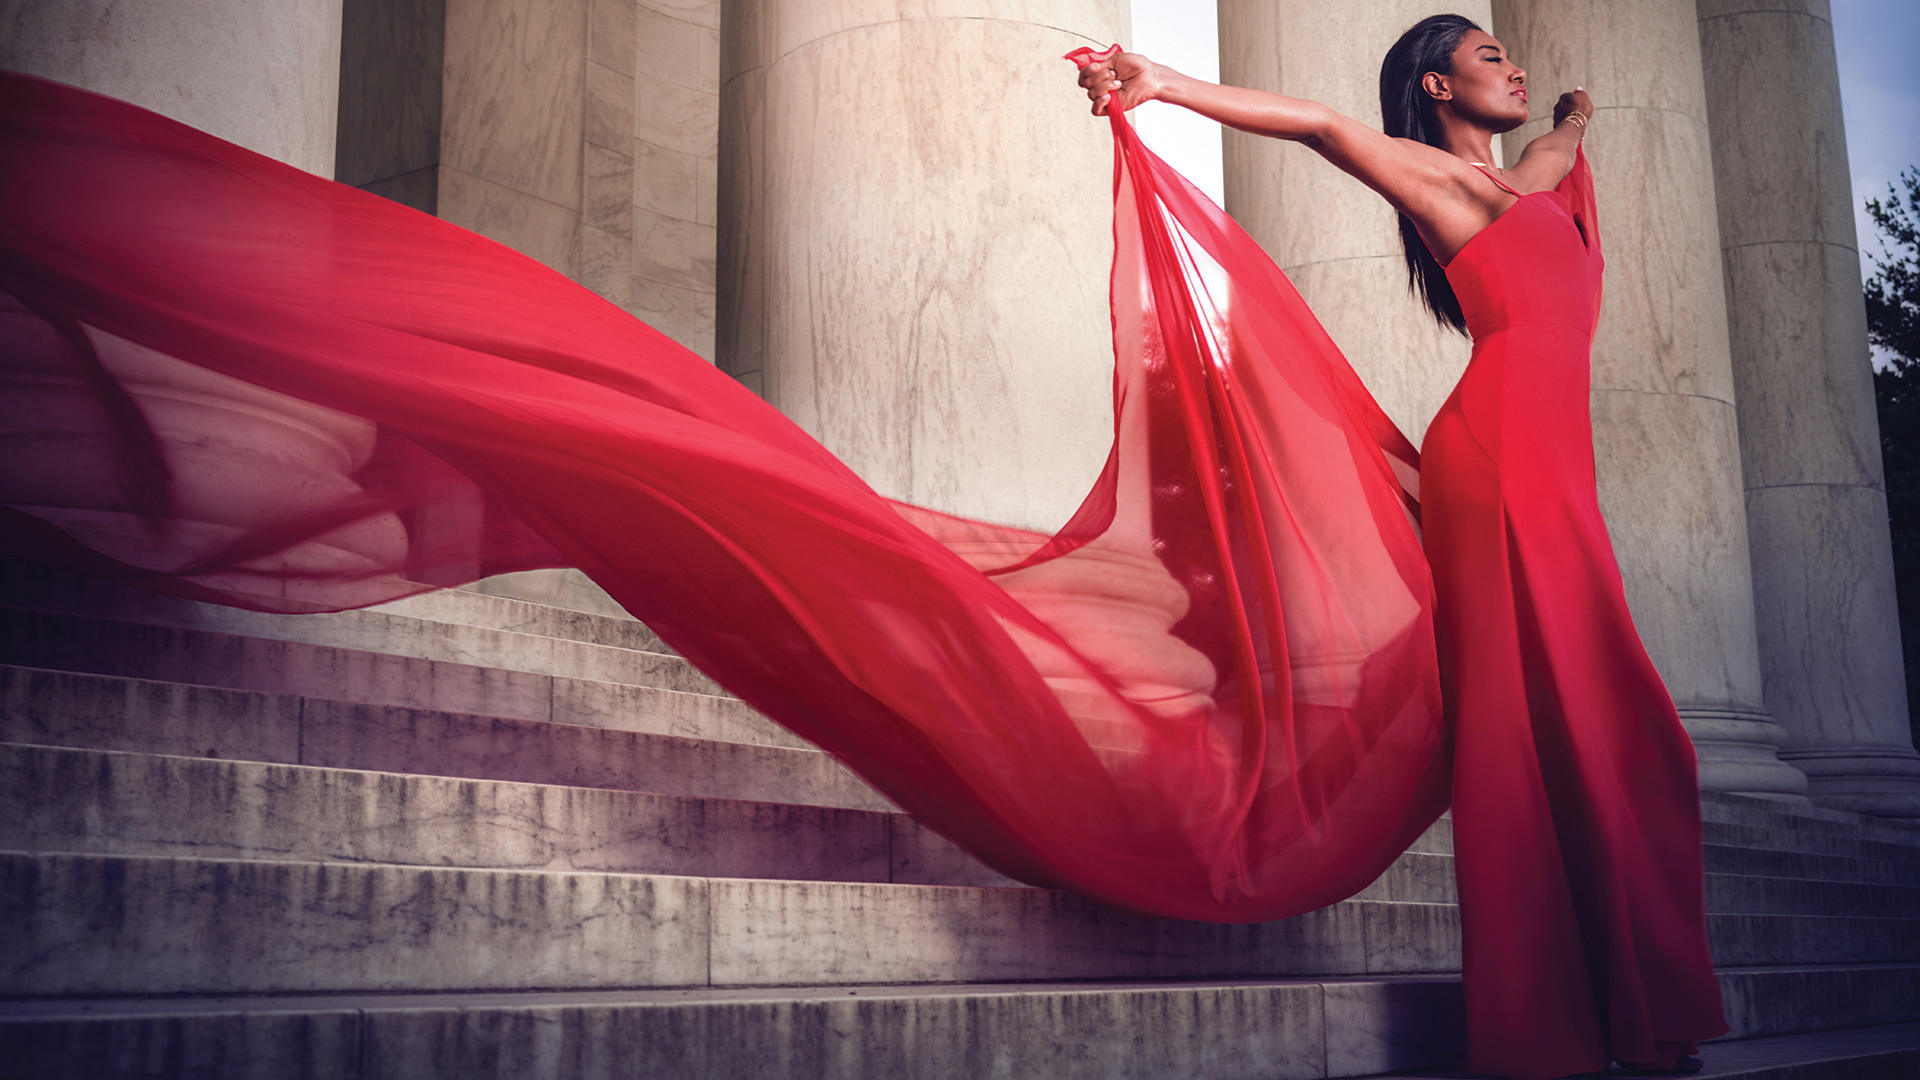 Patina Miller, especially when she stuns in a monumental shoot